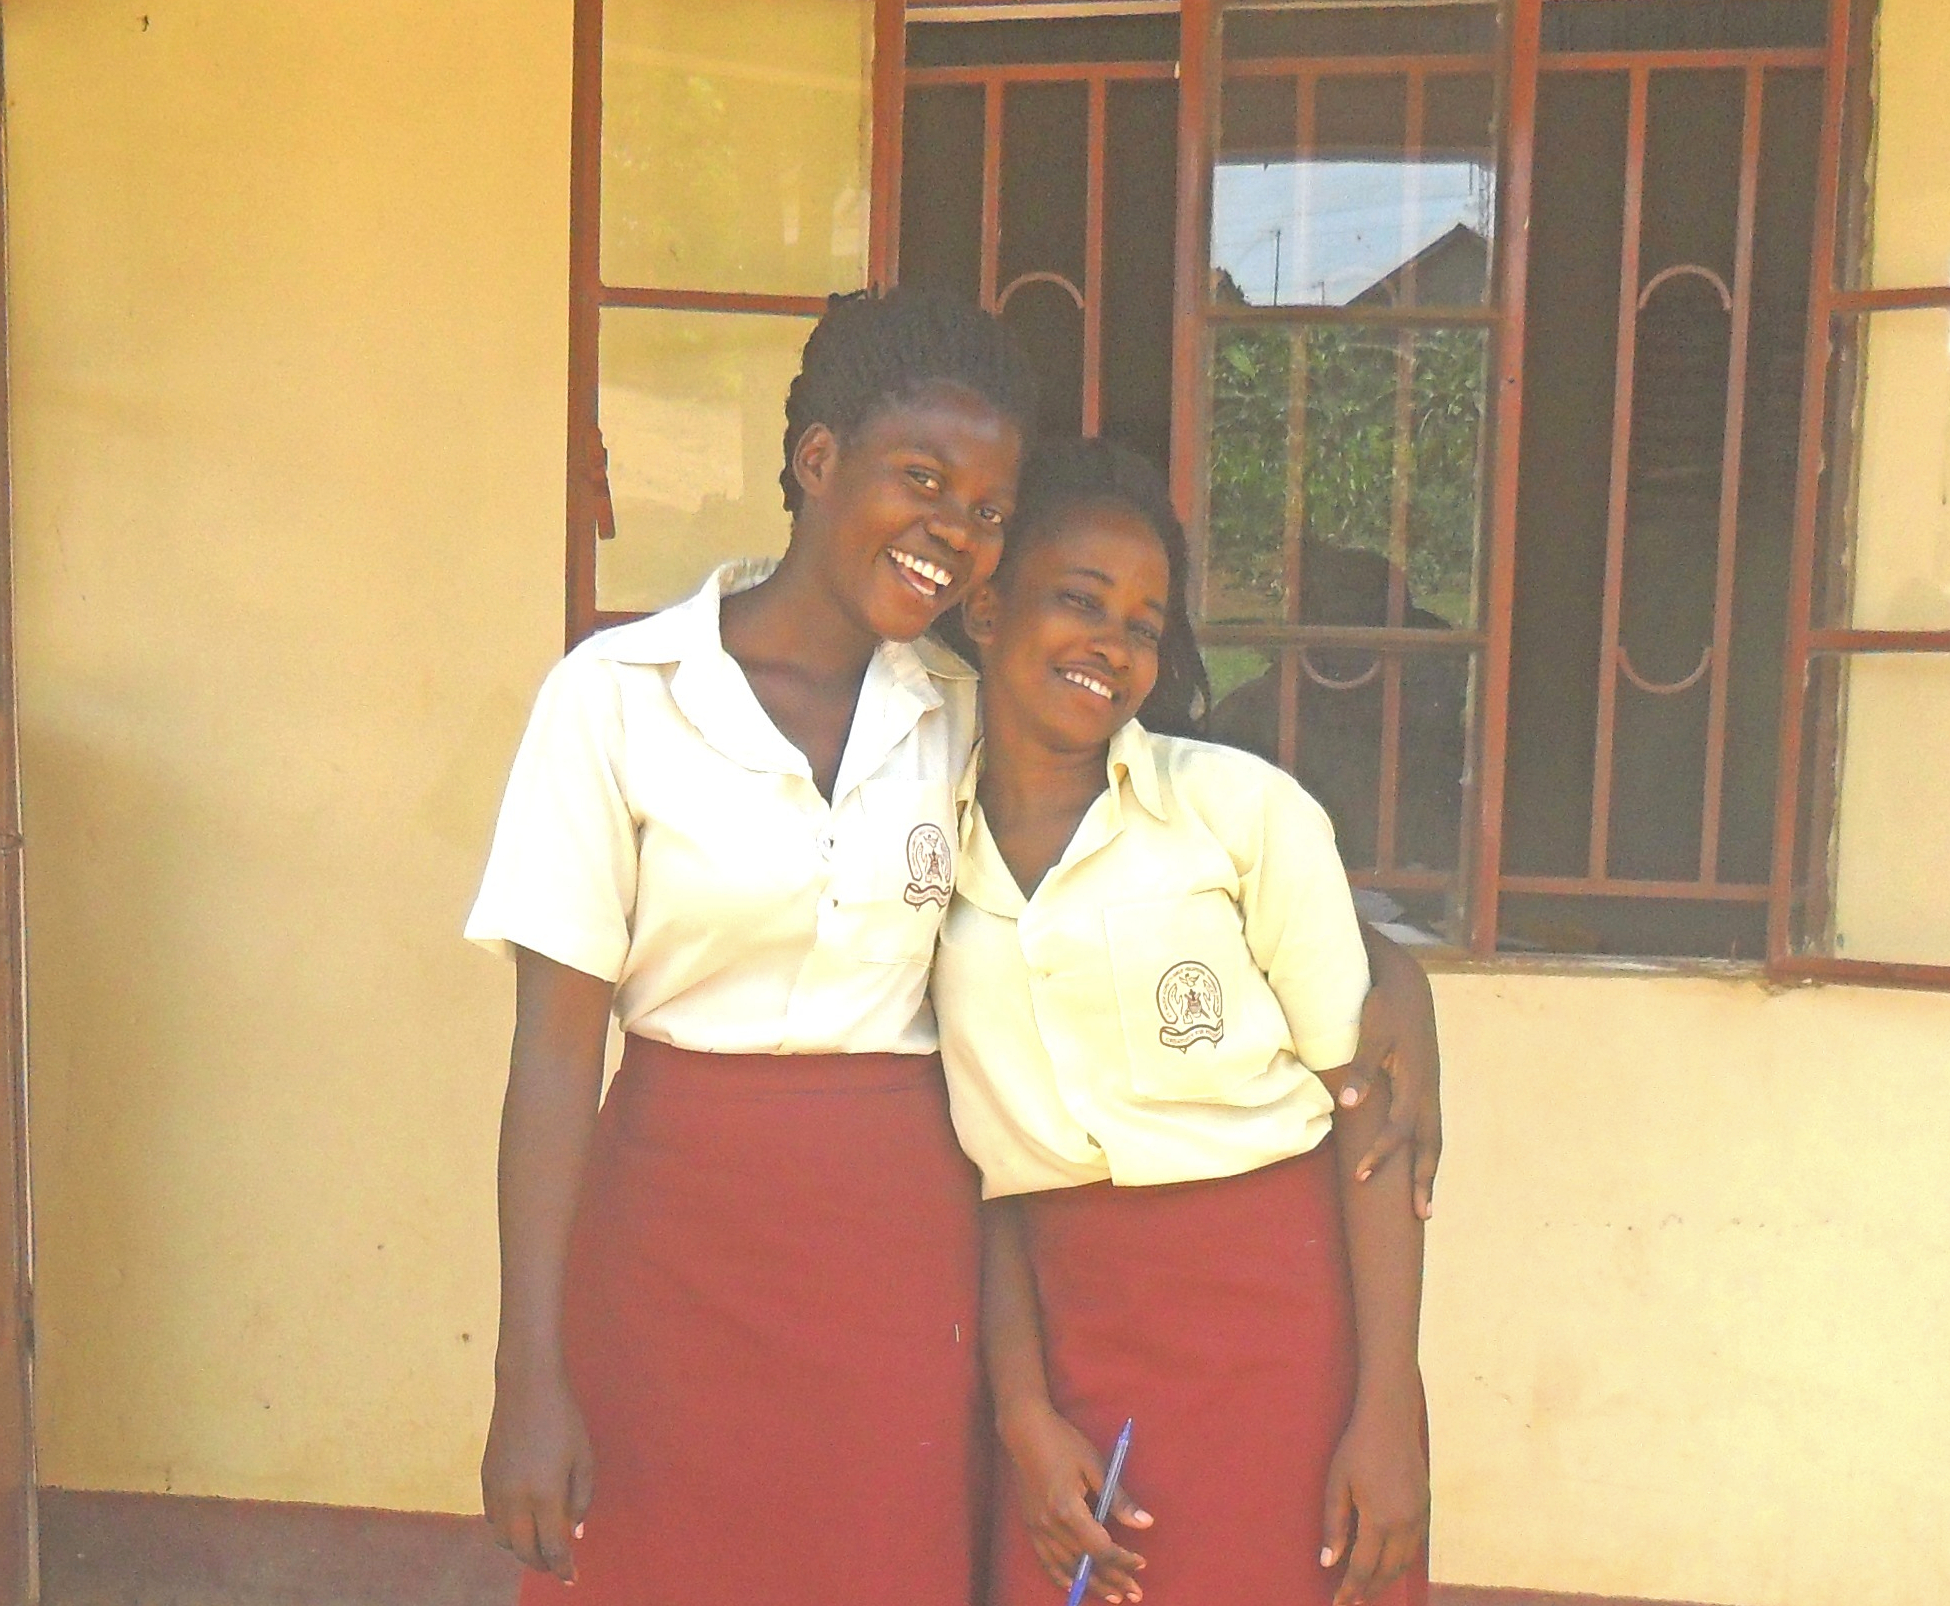 B. Marion & N. Mary, Tailoring Students